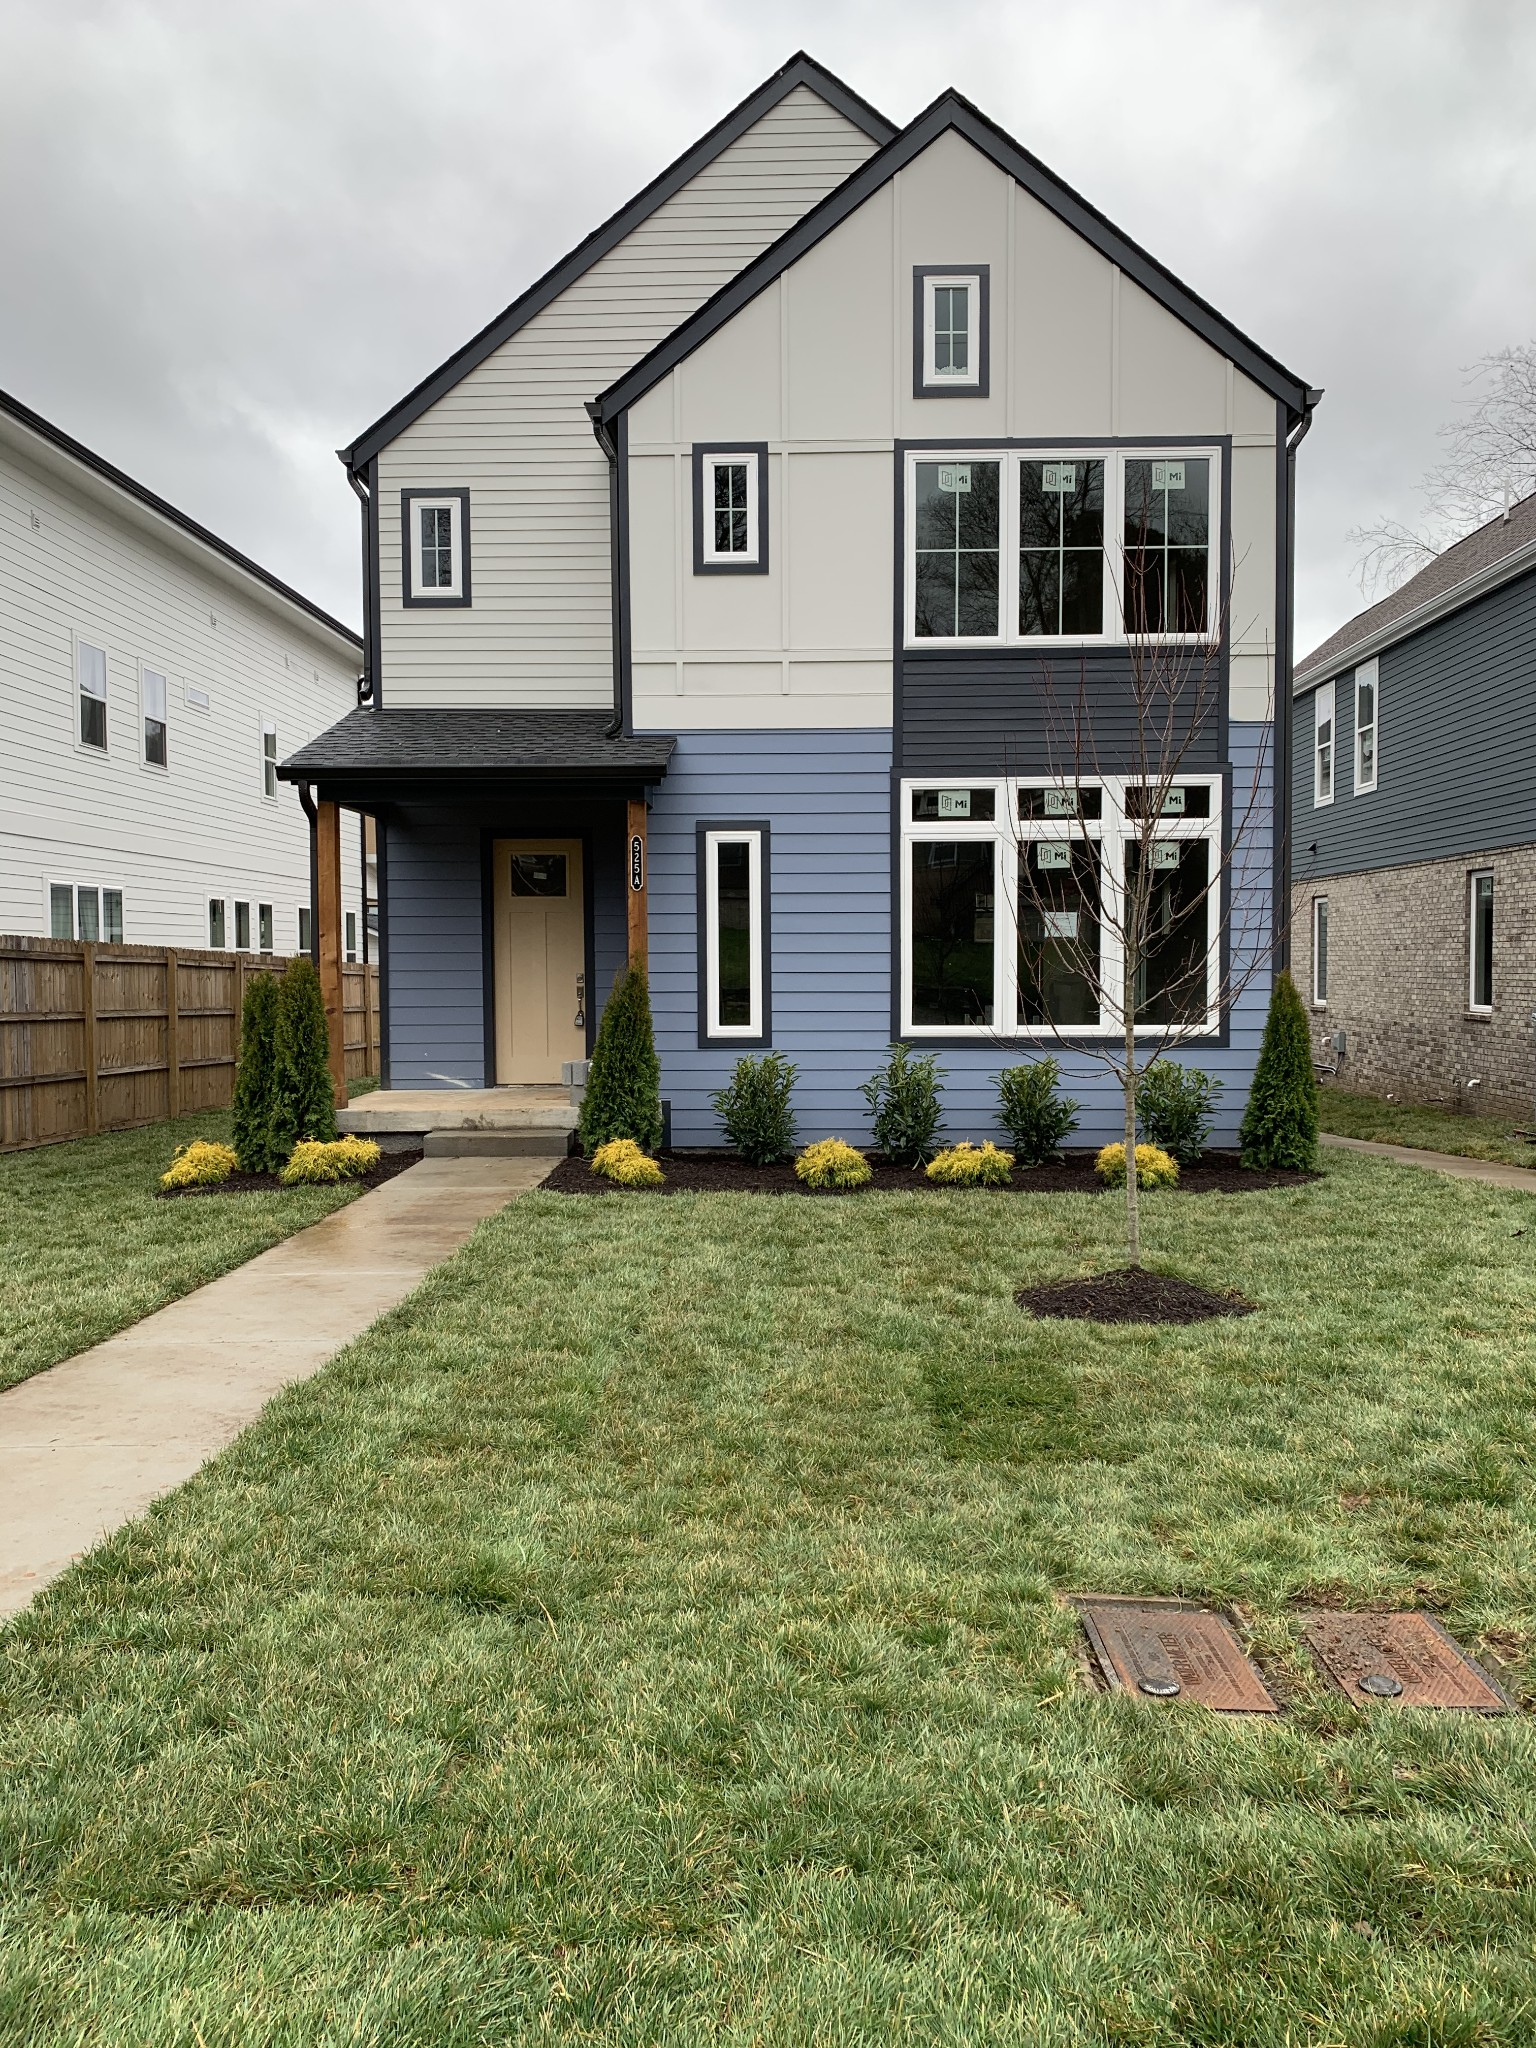 525A Moore Ave, Nashville, TN 37203 - Nashville, TN real estate listing